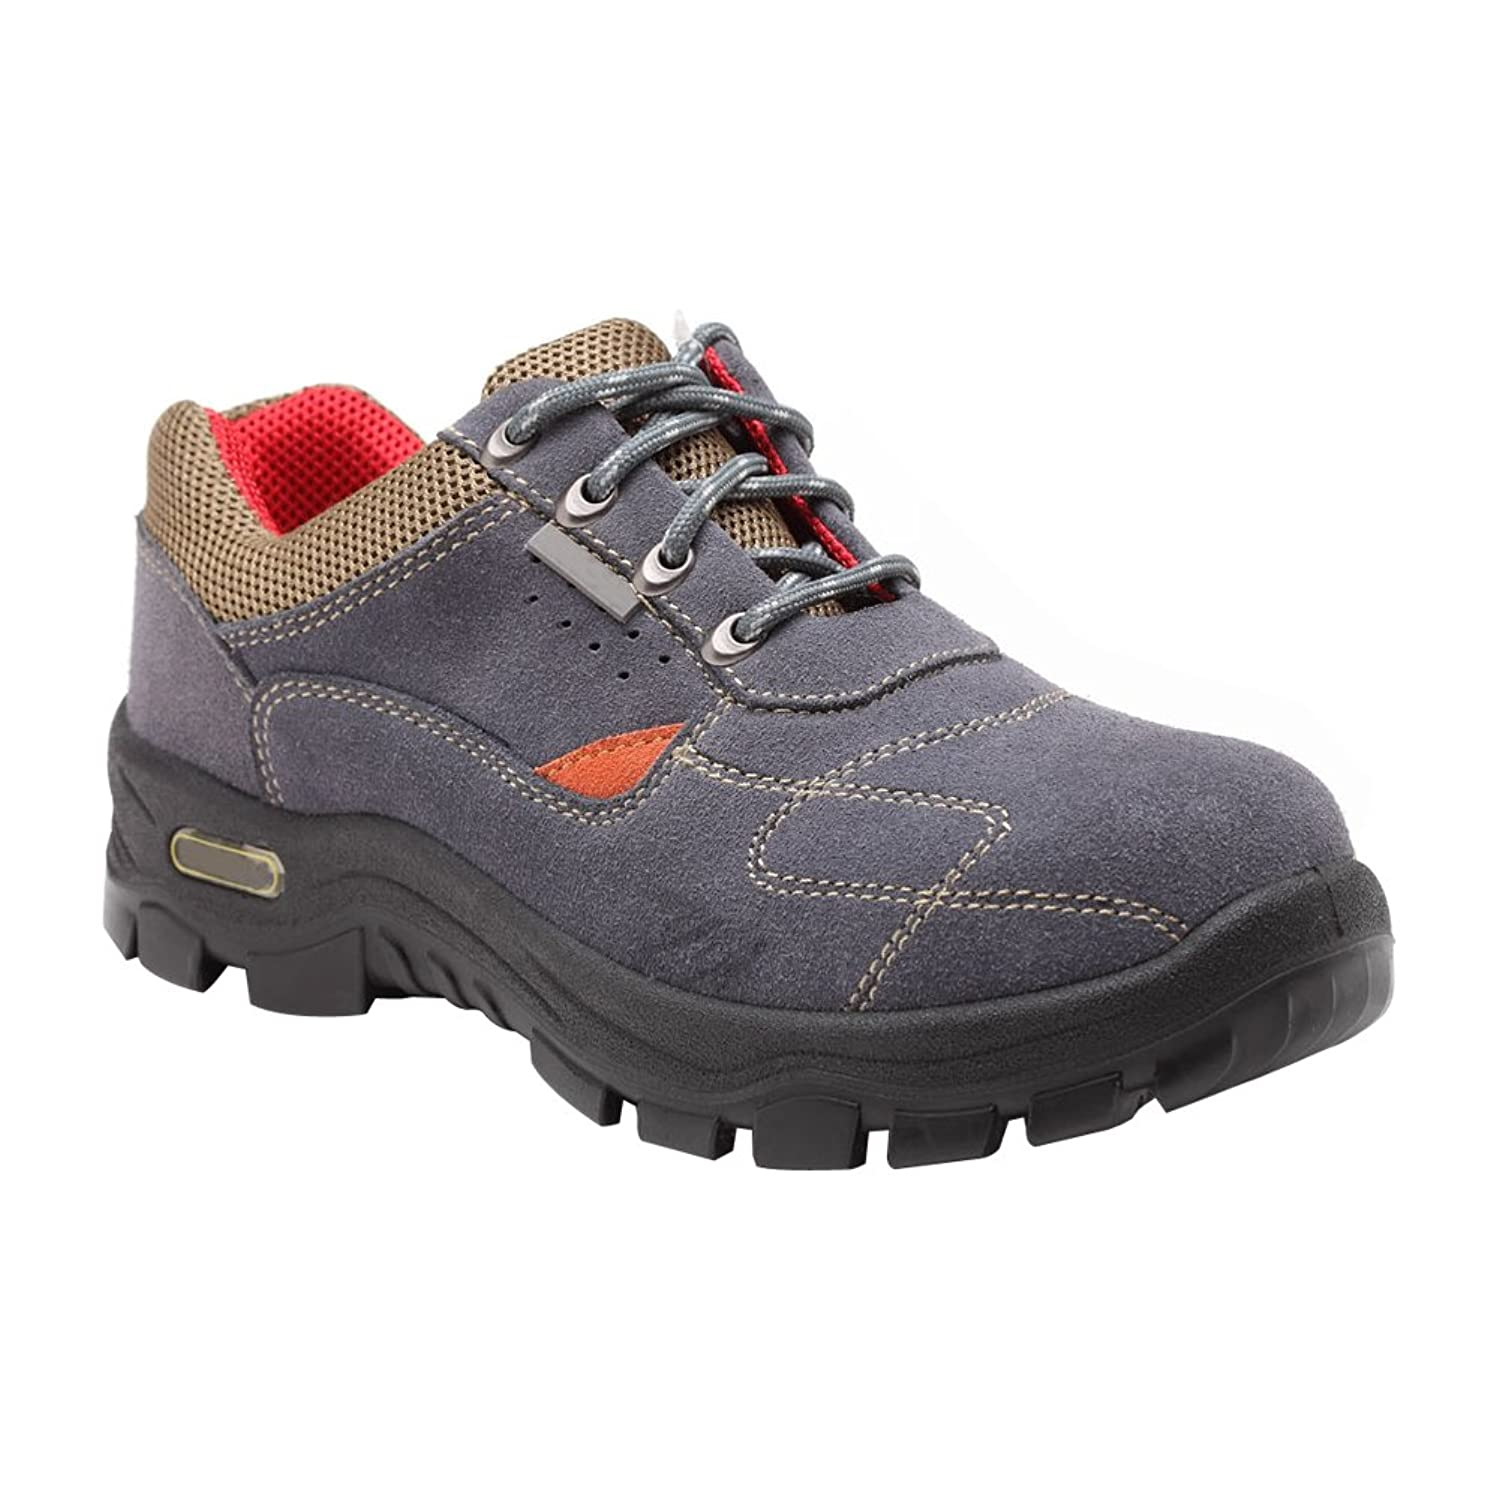 Eclimb Work Men's Steel-Toe Athletic Safety Shoe B01LYRX5T3  26.0 cm